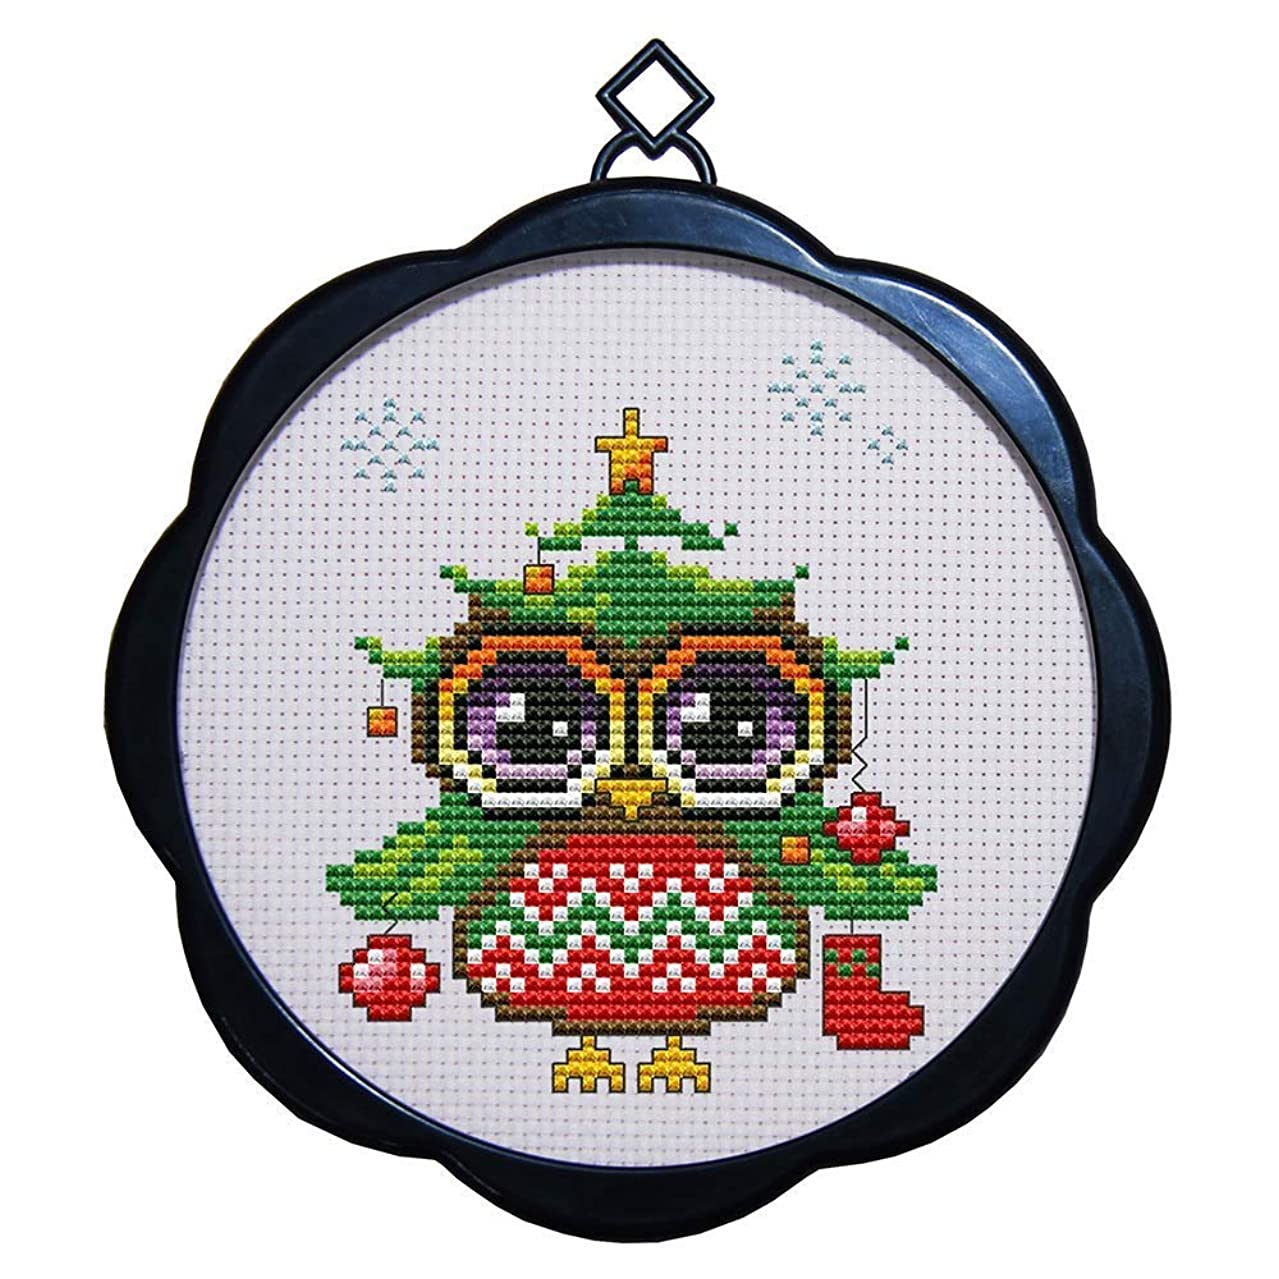 Cross Stitch Stamped Kits Quilt Pre-Printed Patterns Cross-Stitching for Beginner Kids Adults 11CT Embroidery Crafts Needlepoint Starter Kits, Lovely Owl